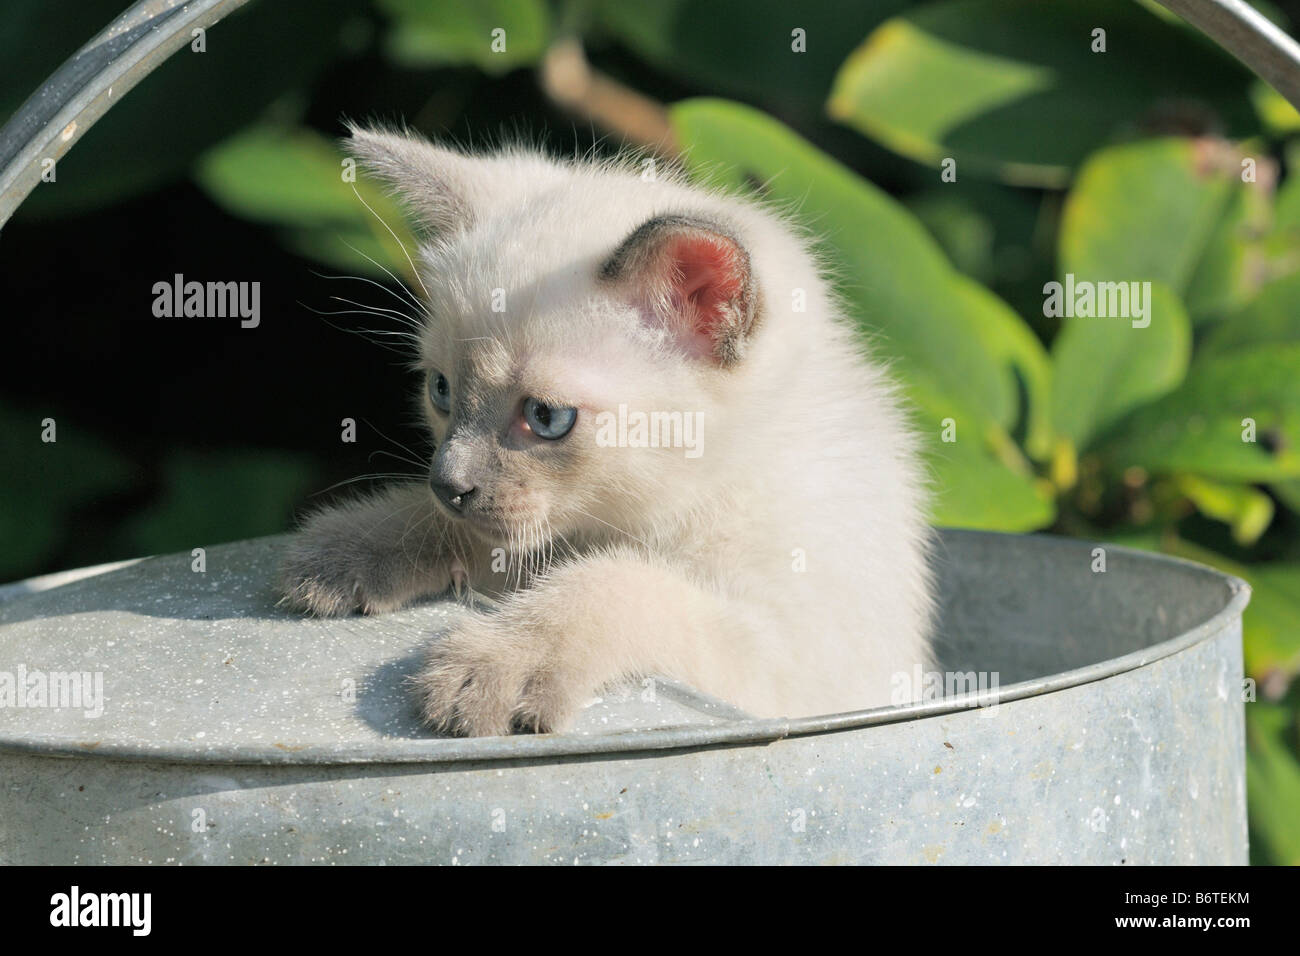 Young Siamese cat looking out from a waterin can - Stock Image